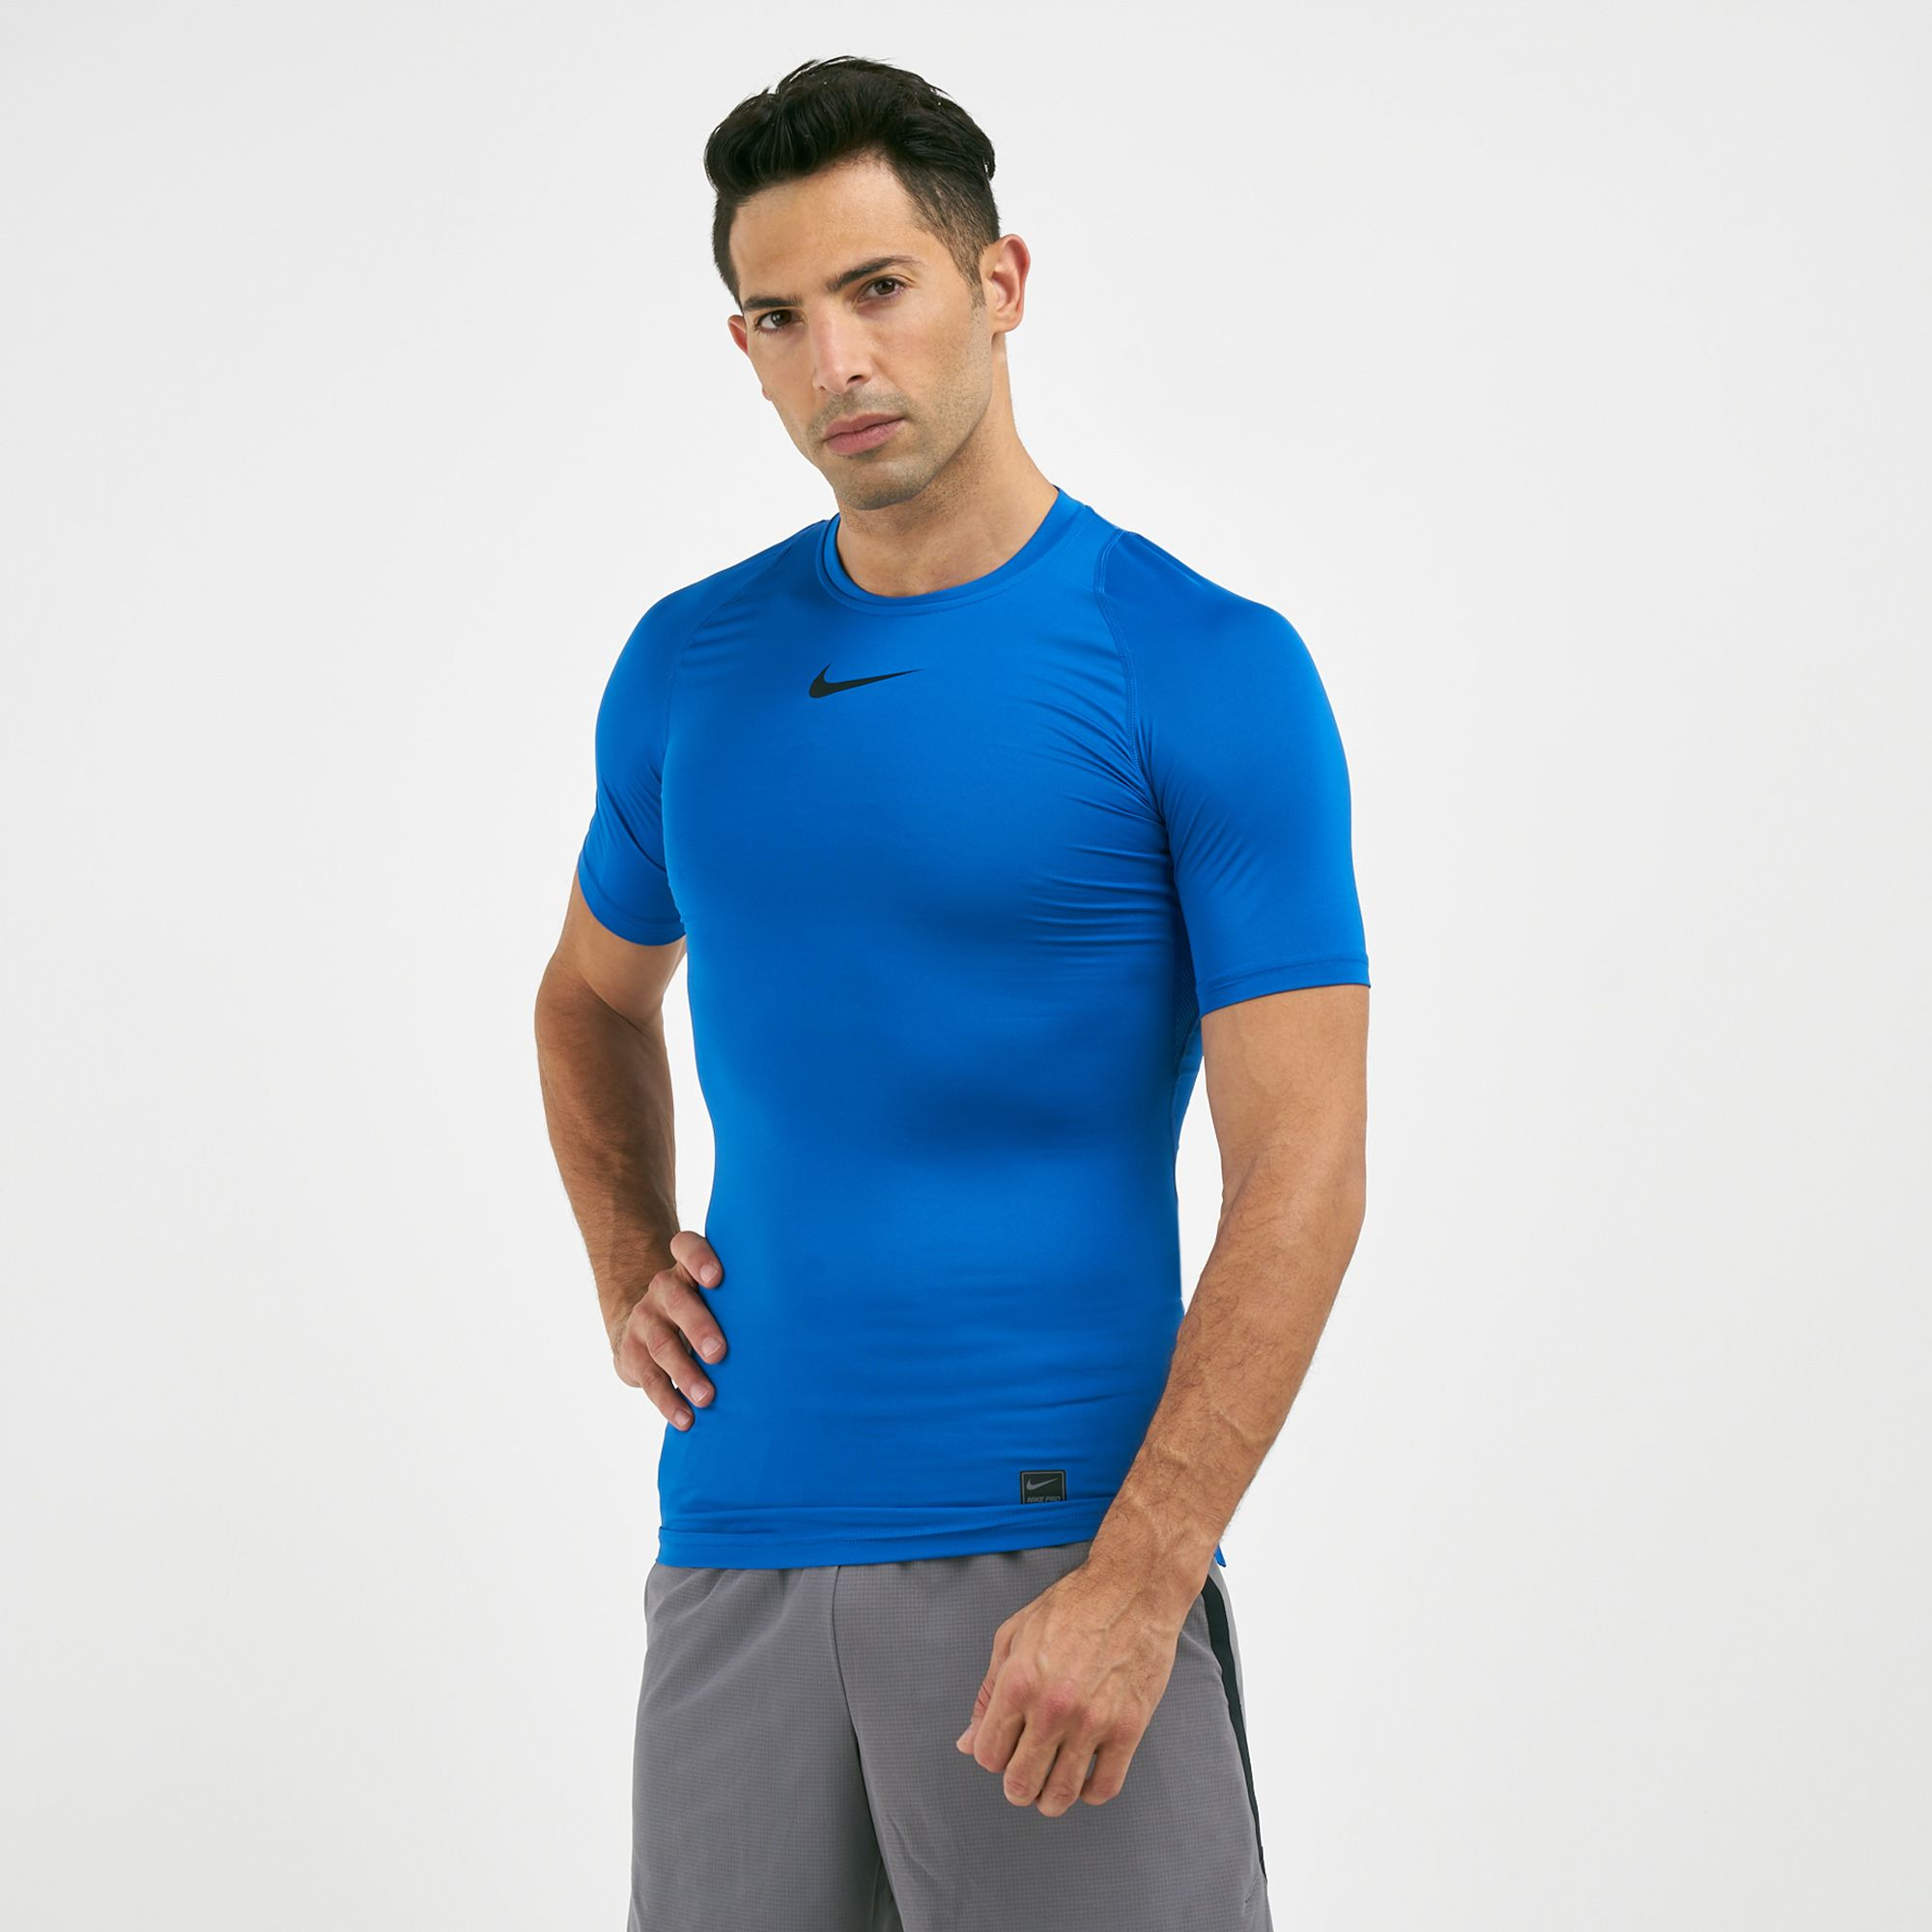 27a75d6a Nike Men's Pro Training T-Shirt | T-Shirts | Tops | Clothing | Mens ...